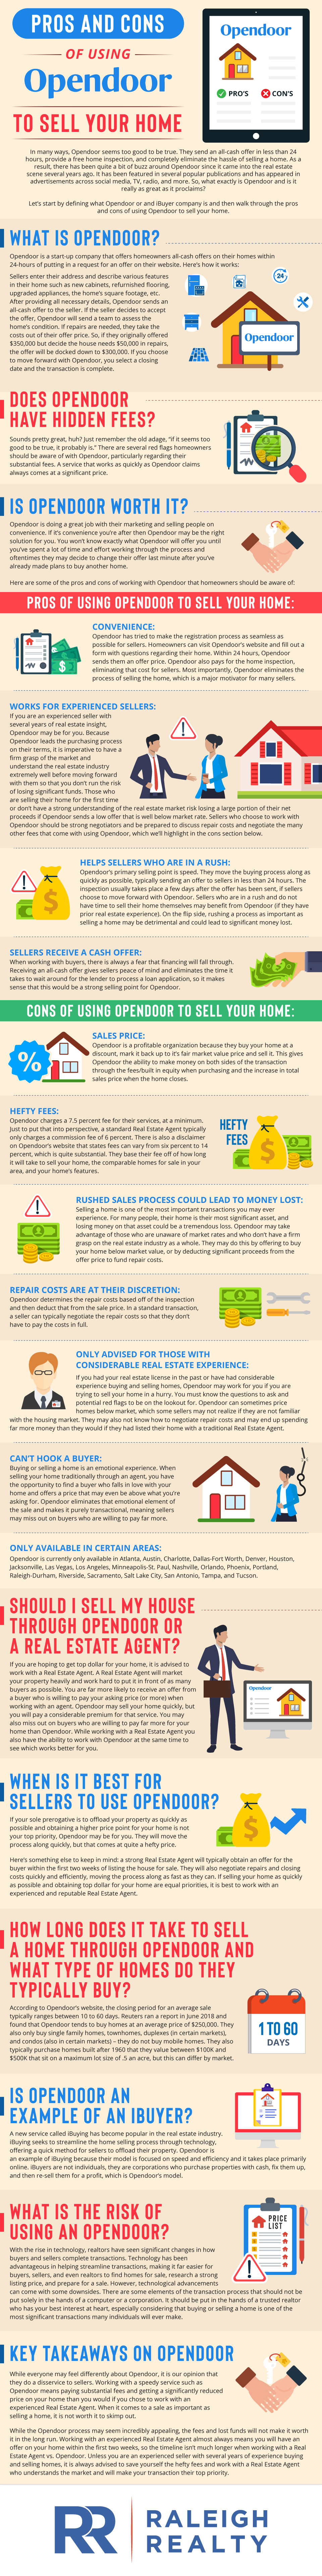 Pros and Cons of Using Opendoor to Sell Your Home Should